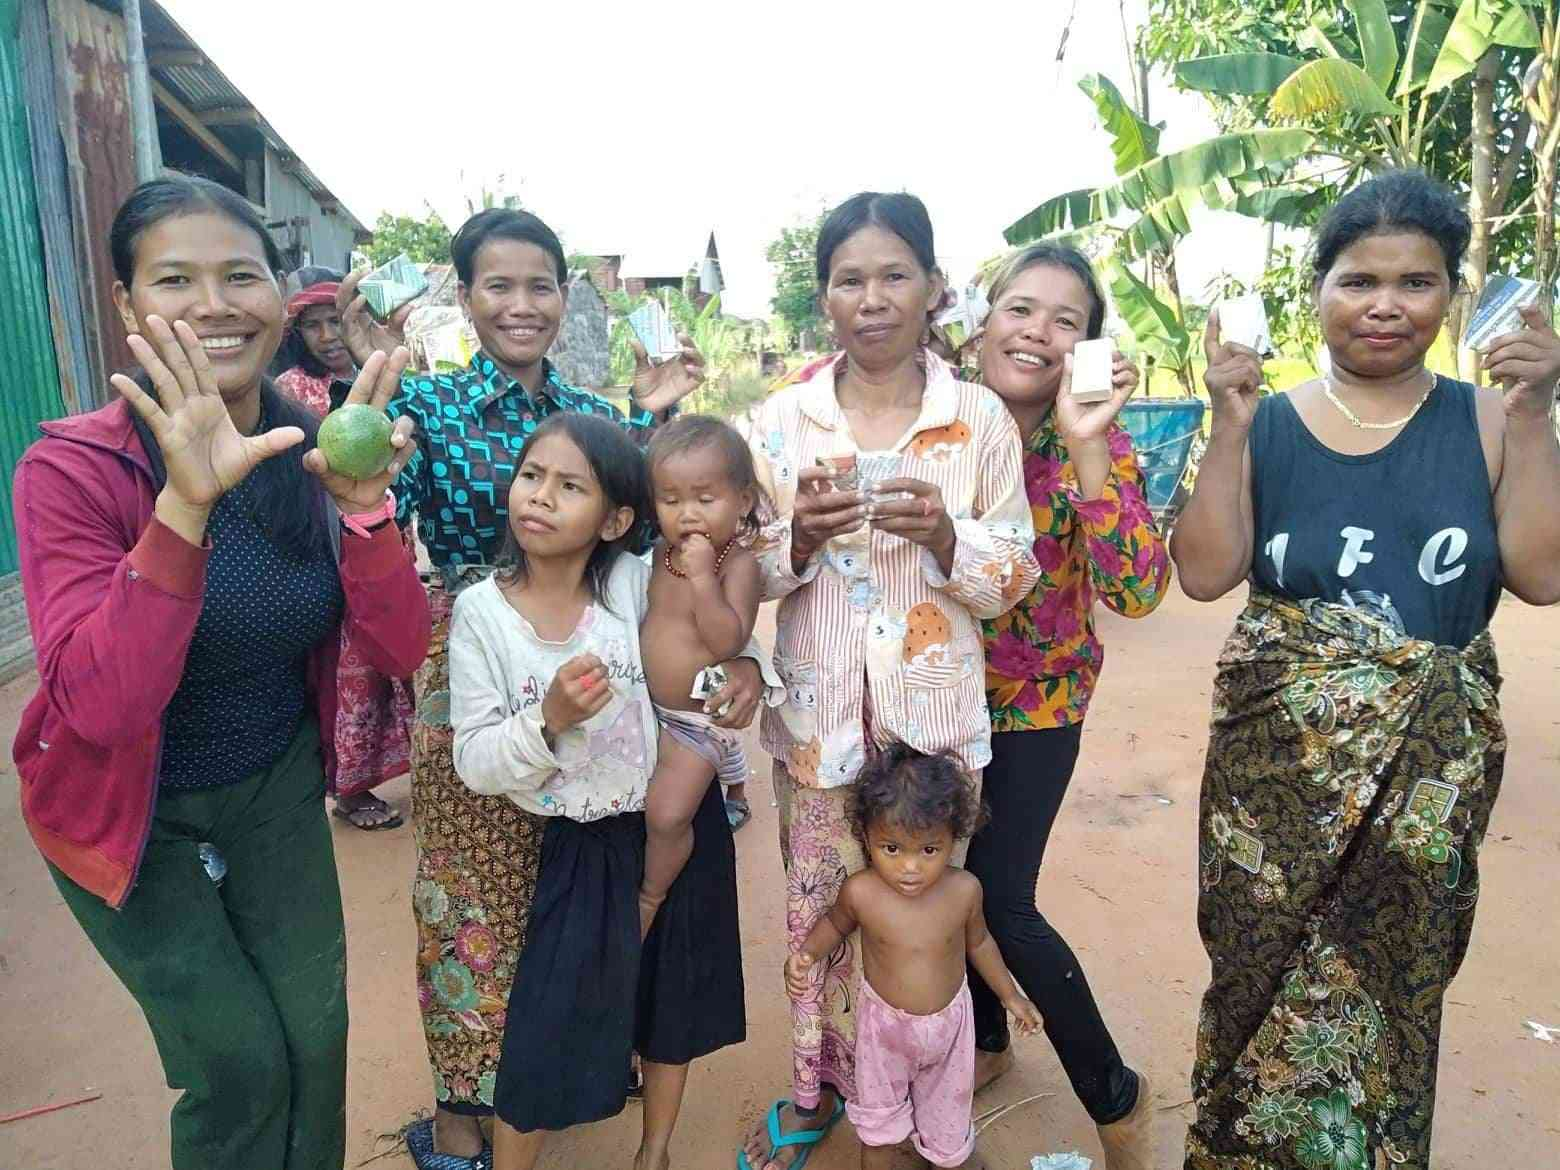 Women and children pose with new donated soap in Cambodia